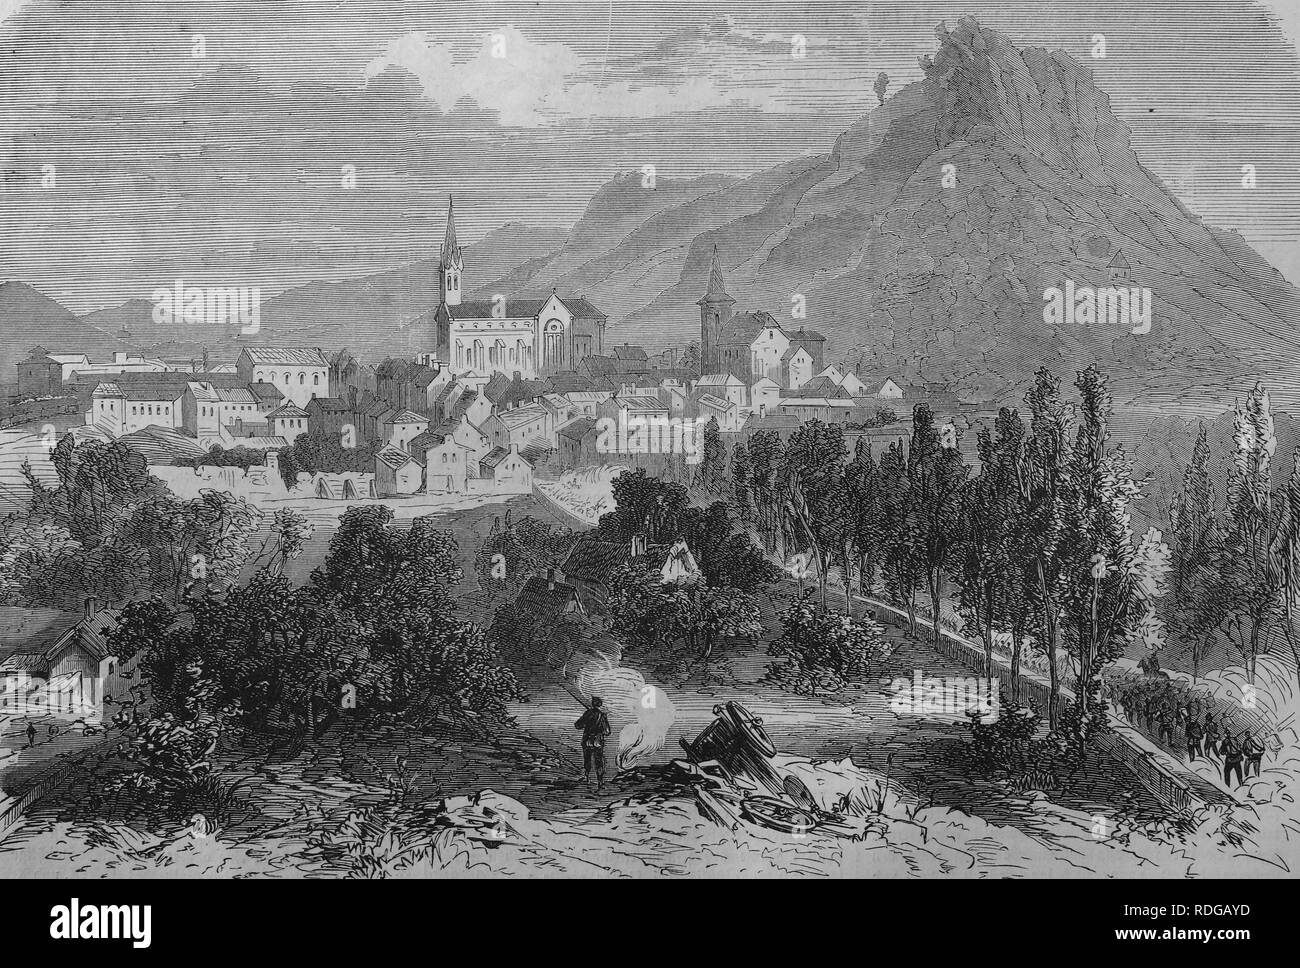 View of Forbach, October 1870, historic illustration, illustrated war chronicle 1870 to 1871, German campaign against France - Stock Image